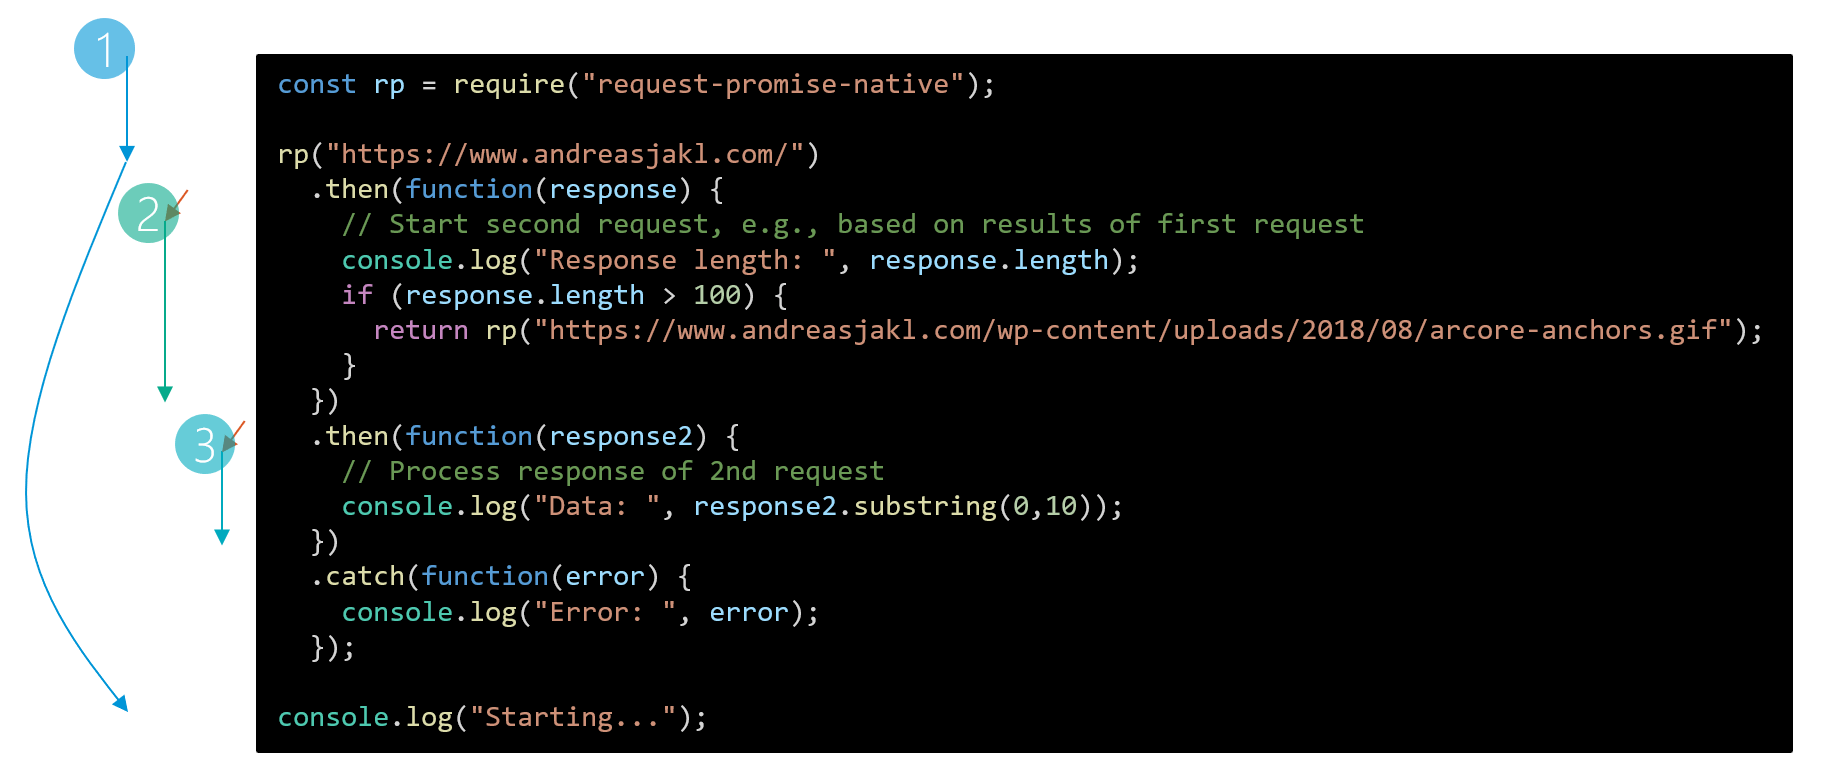 Execution flow of promises using the request-promise-native module of Node.js